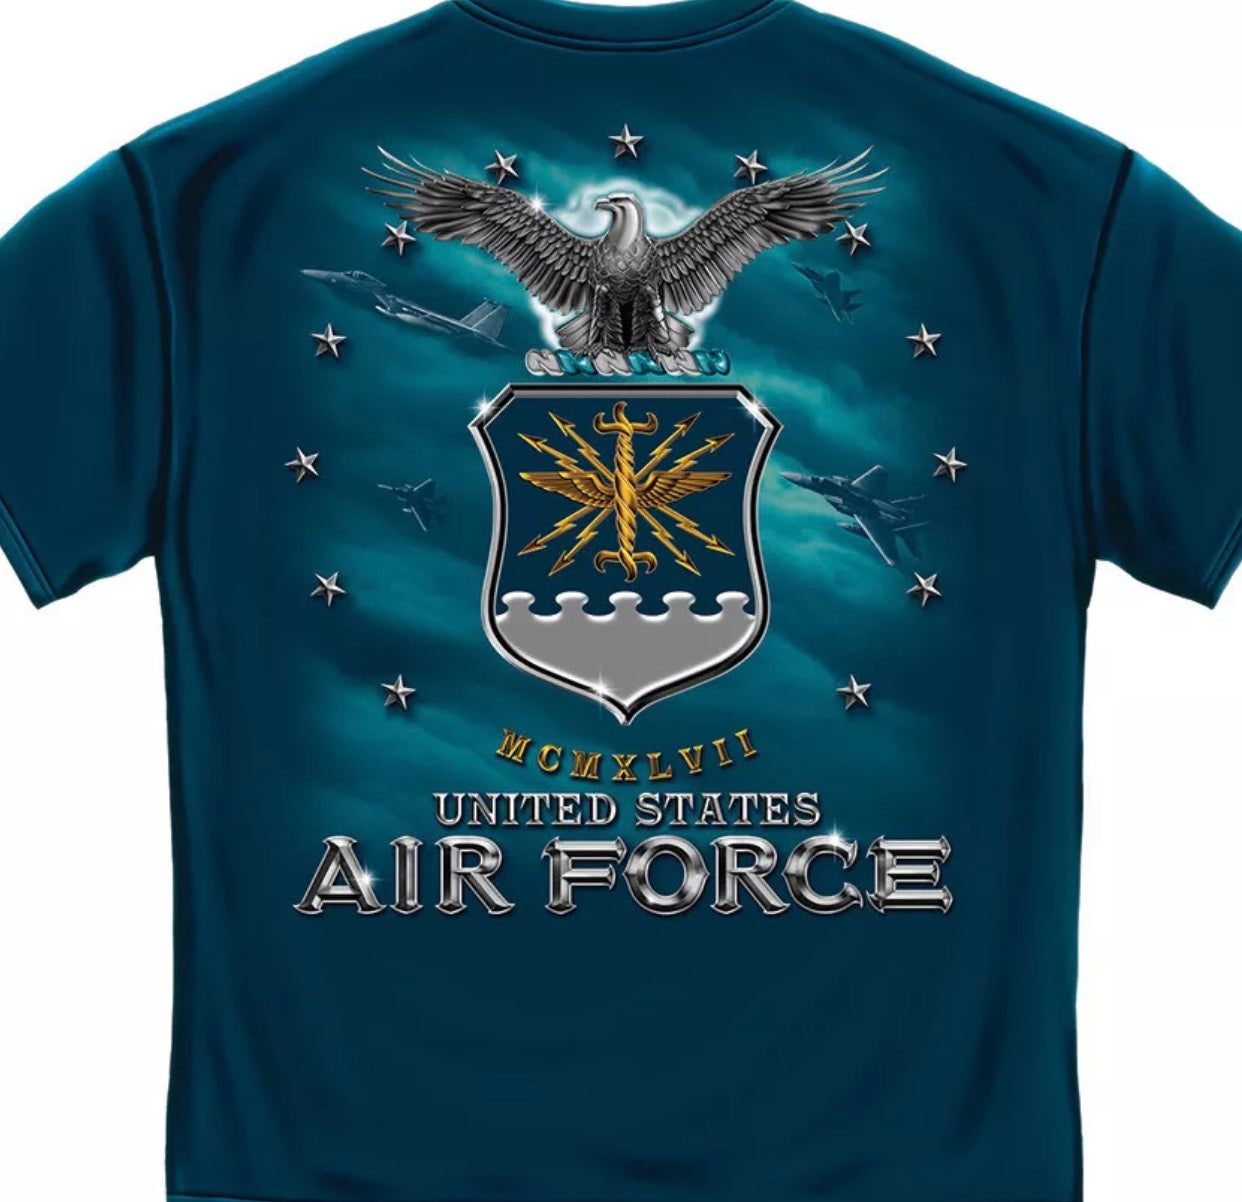 Air Force Missile T-Shirt - The Wall Kids, Inc.